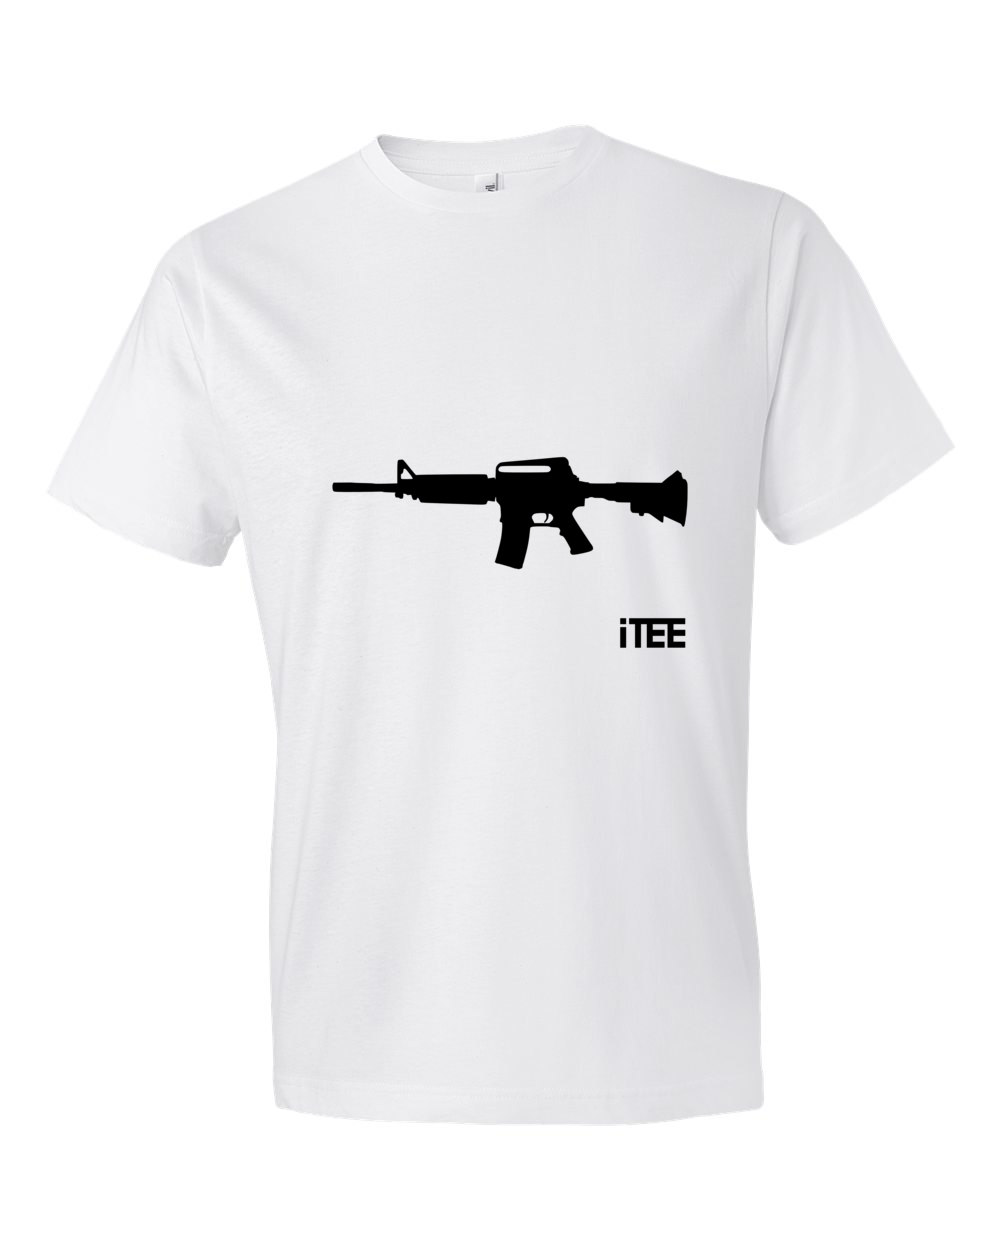 Rifle-Lightweight-Fashion-Short-Sleeve-T-Shirt-by-iTEE.com